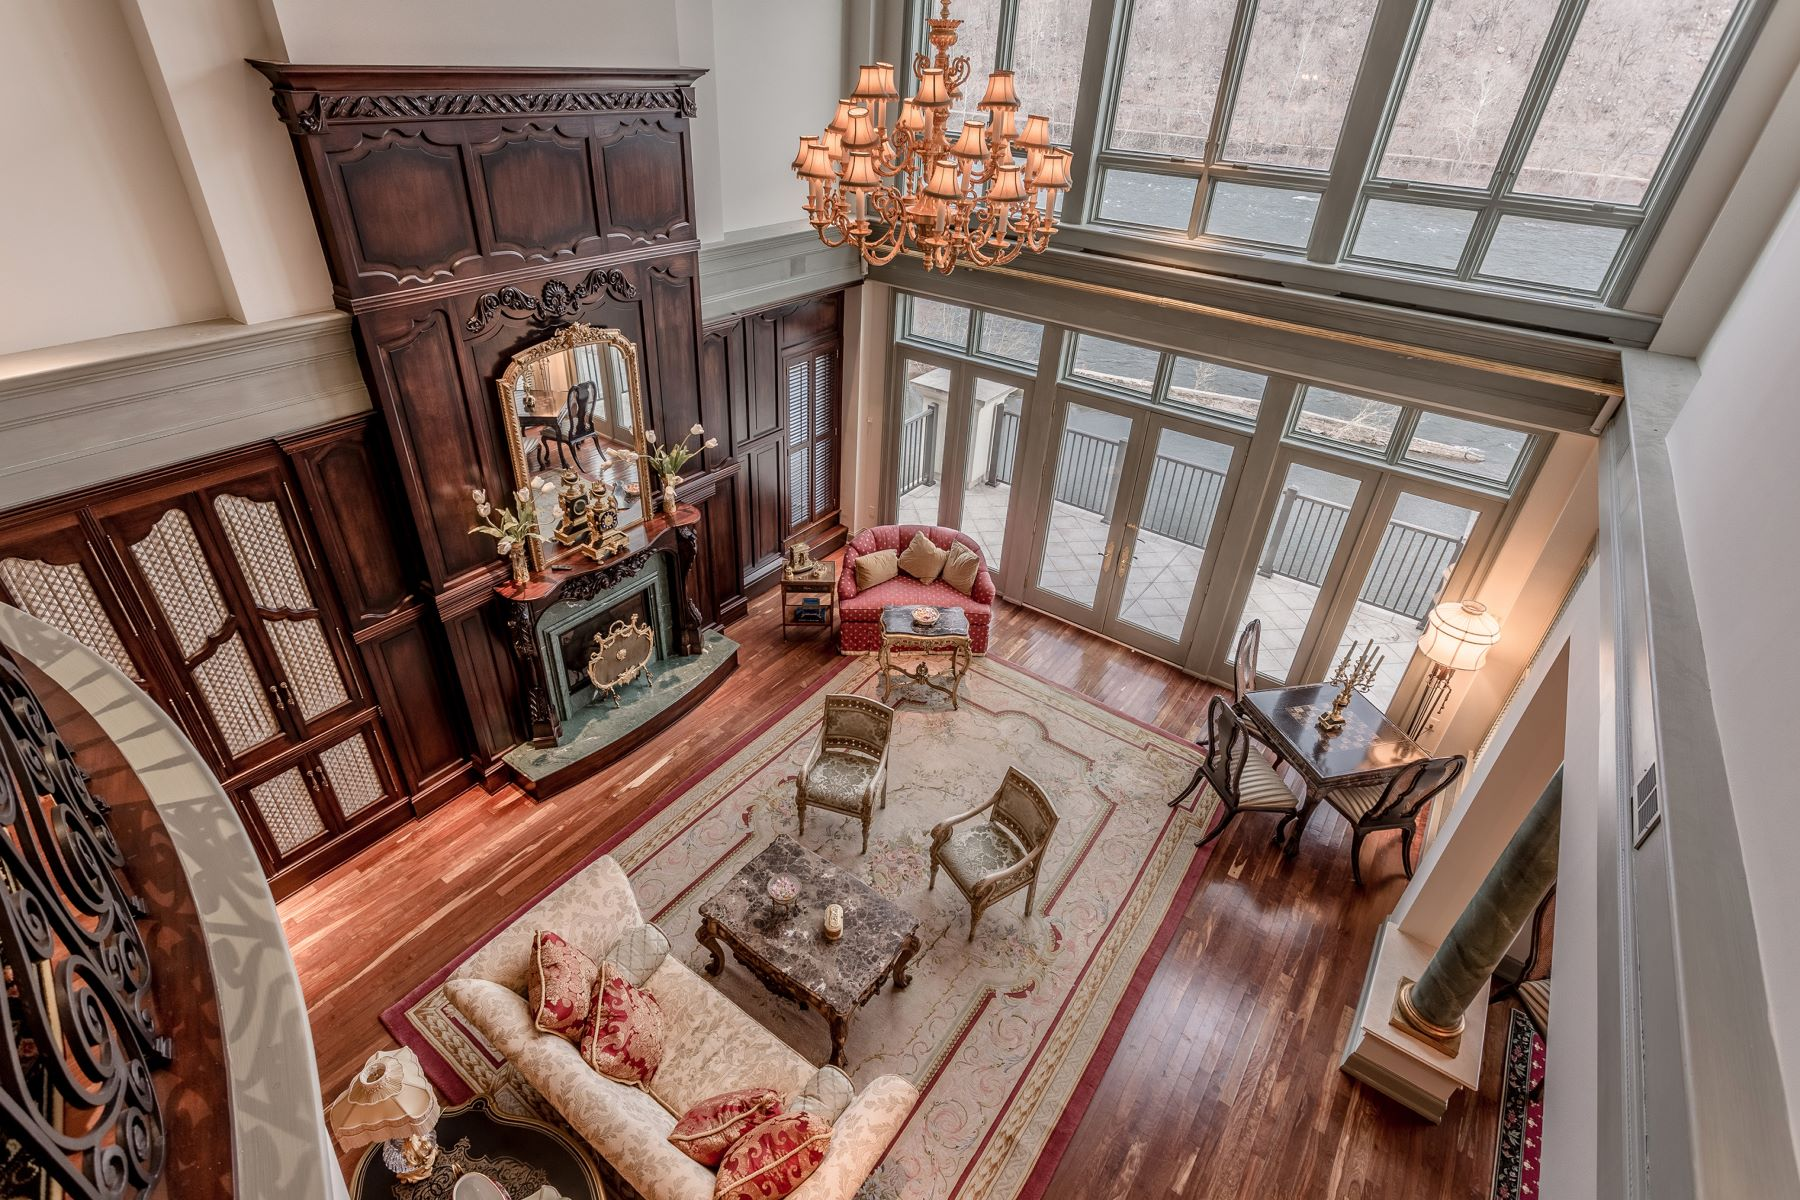 Condominium for Sale at Waterview Place Penthouse 512 WATERVIEW PL, New Hope, Pennsylvania 18938 United States